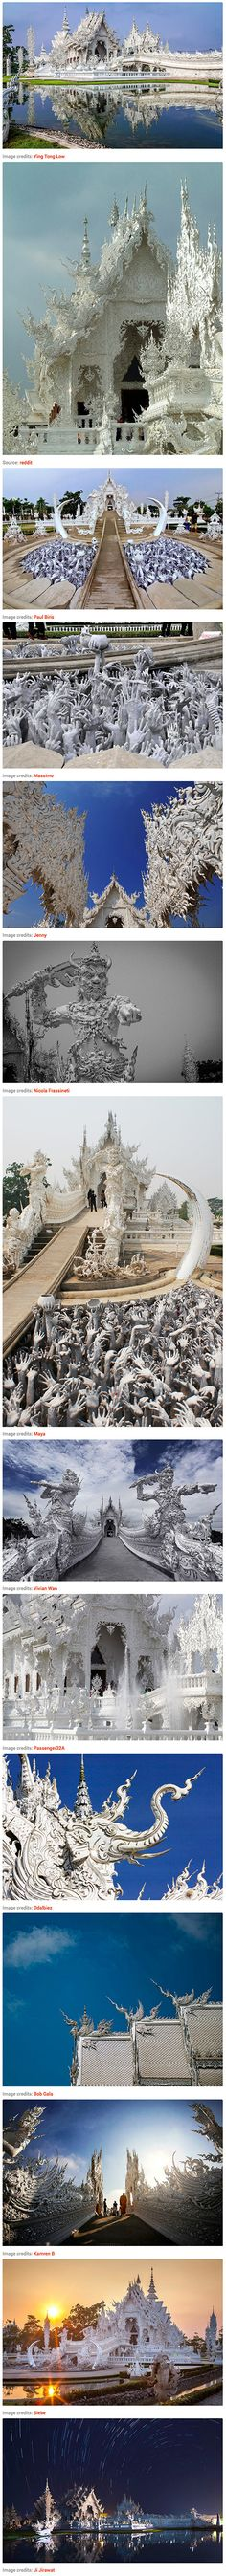 Believe it or not, this is a real place – Wat Rong Khun, better known as the White Temple, is a Buddhist temple in Thailand that looks like it was placed on earth by a god. Though it may have involved divine inspiration, it was in fact designed by a man. Chalermchai Kositpipat, a Thai artist, designed the temple in 1997. It was almost destroyed by an earthquake in May of this year, but Kositpipat was inspired to rebuild the temple after an outpouring of international support urging him not…